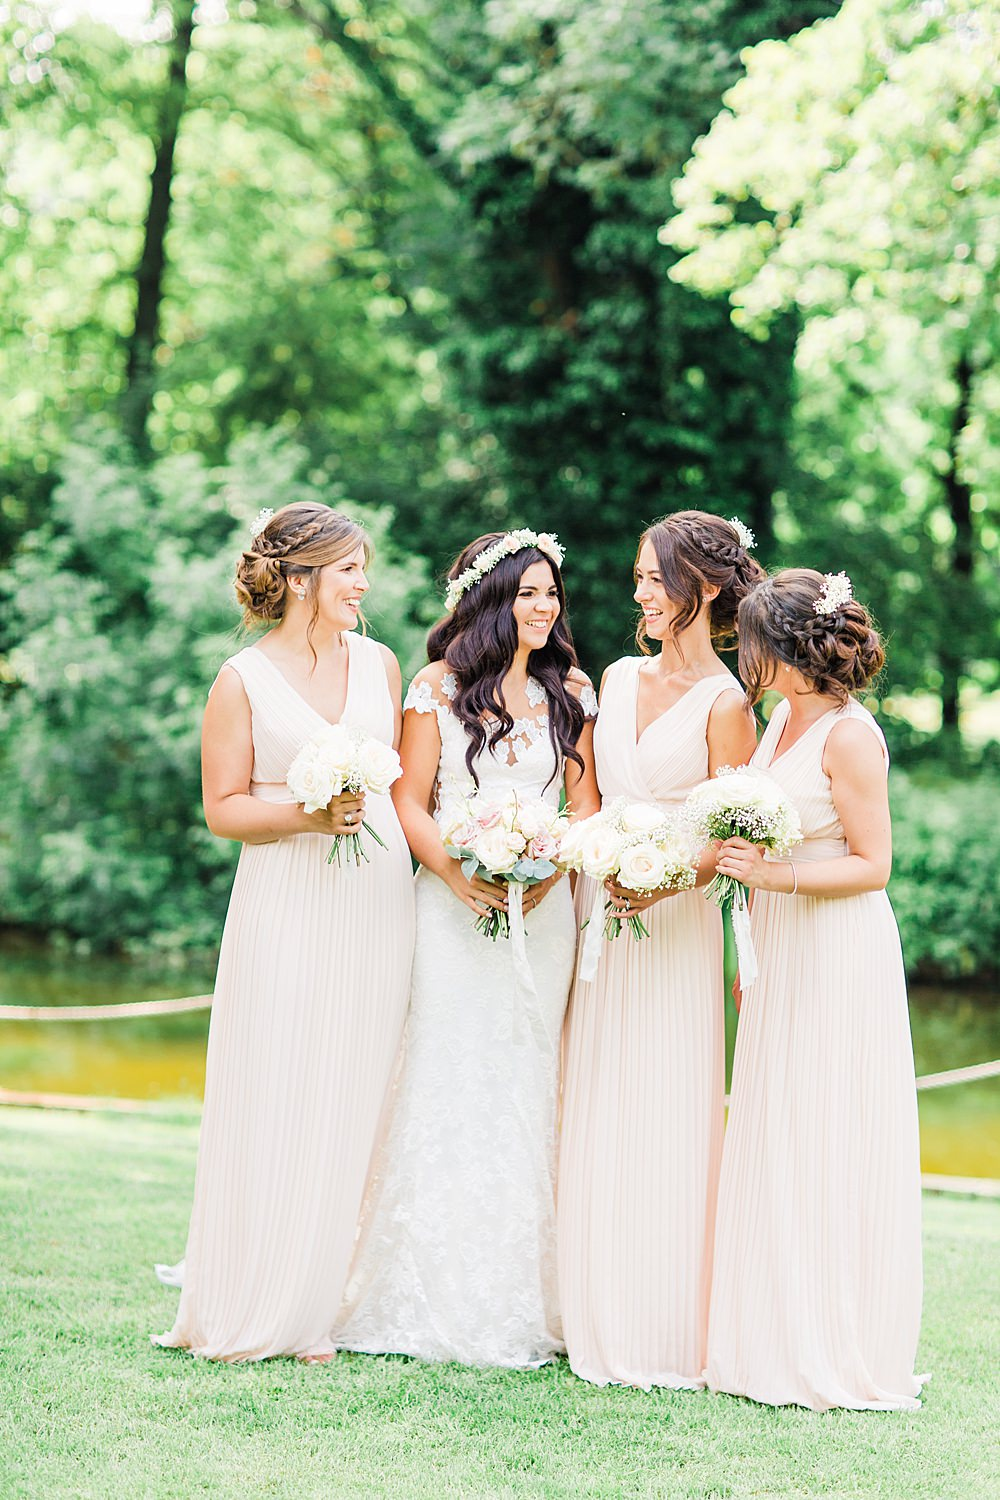 Bridesmaid Bridesmaids Dress Dresses Long Maxi Blush Pastel Sheene Mill Wedding Terri & Lori Photography and Film Studio